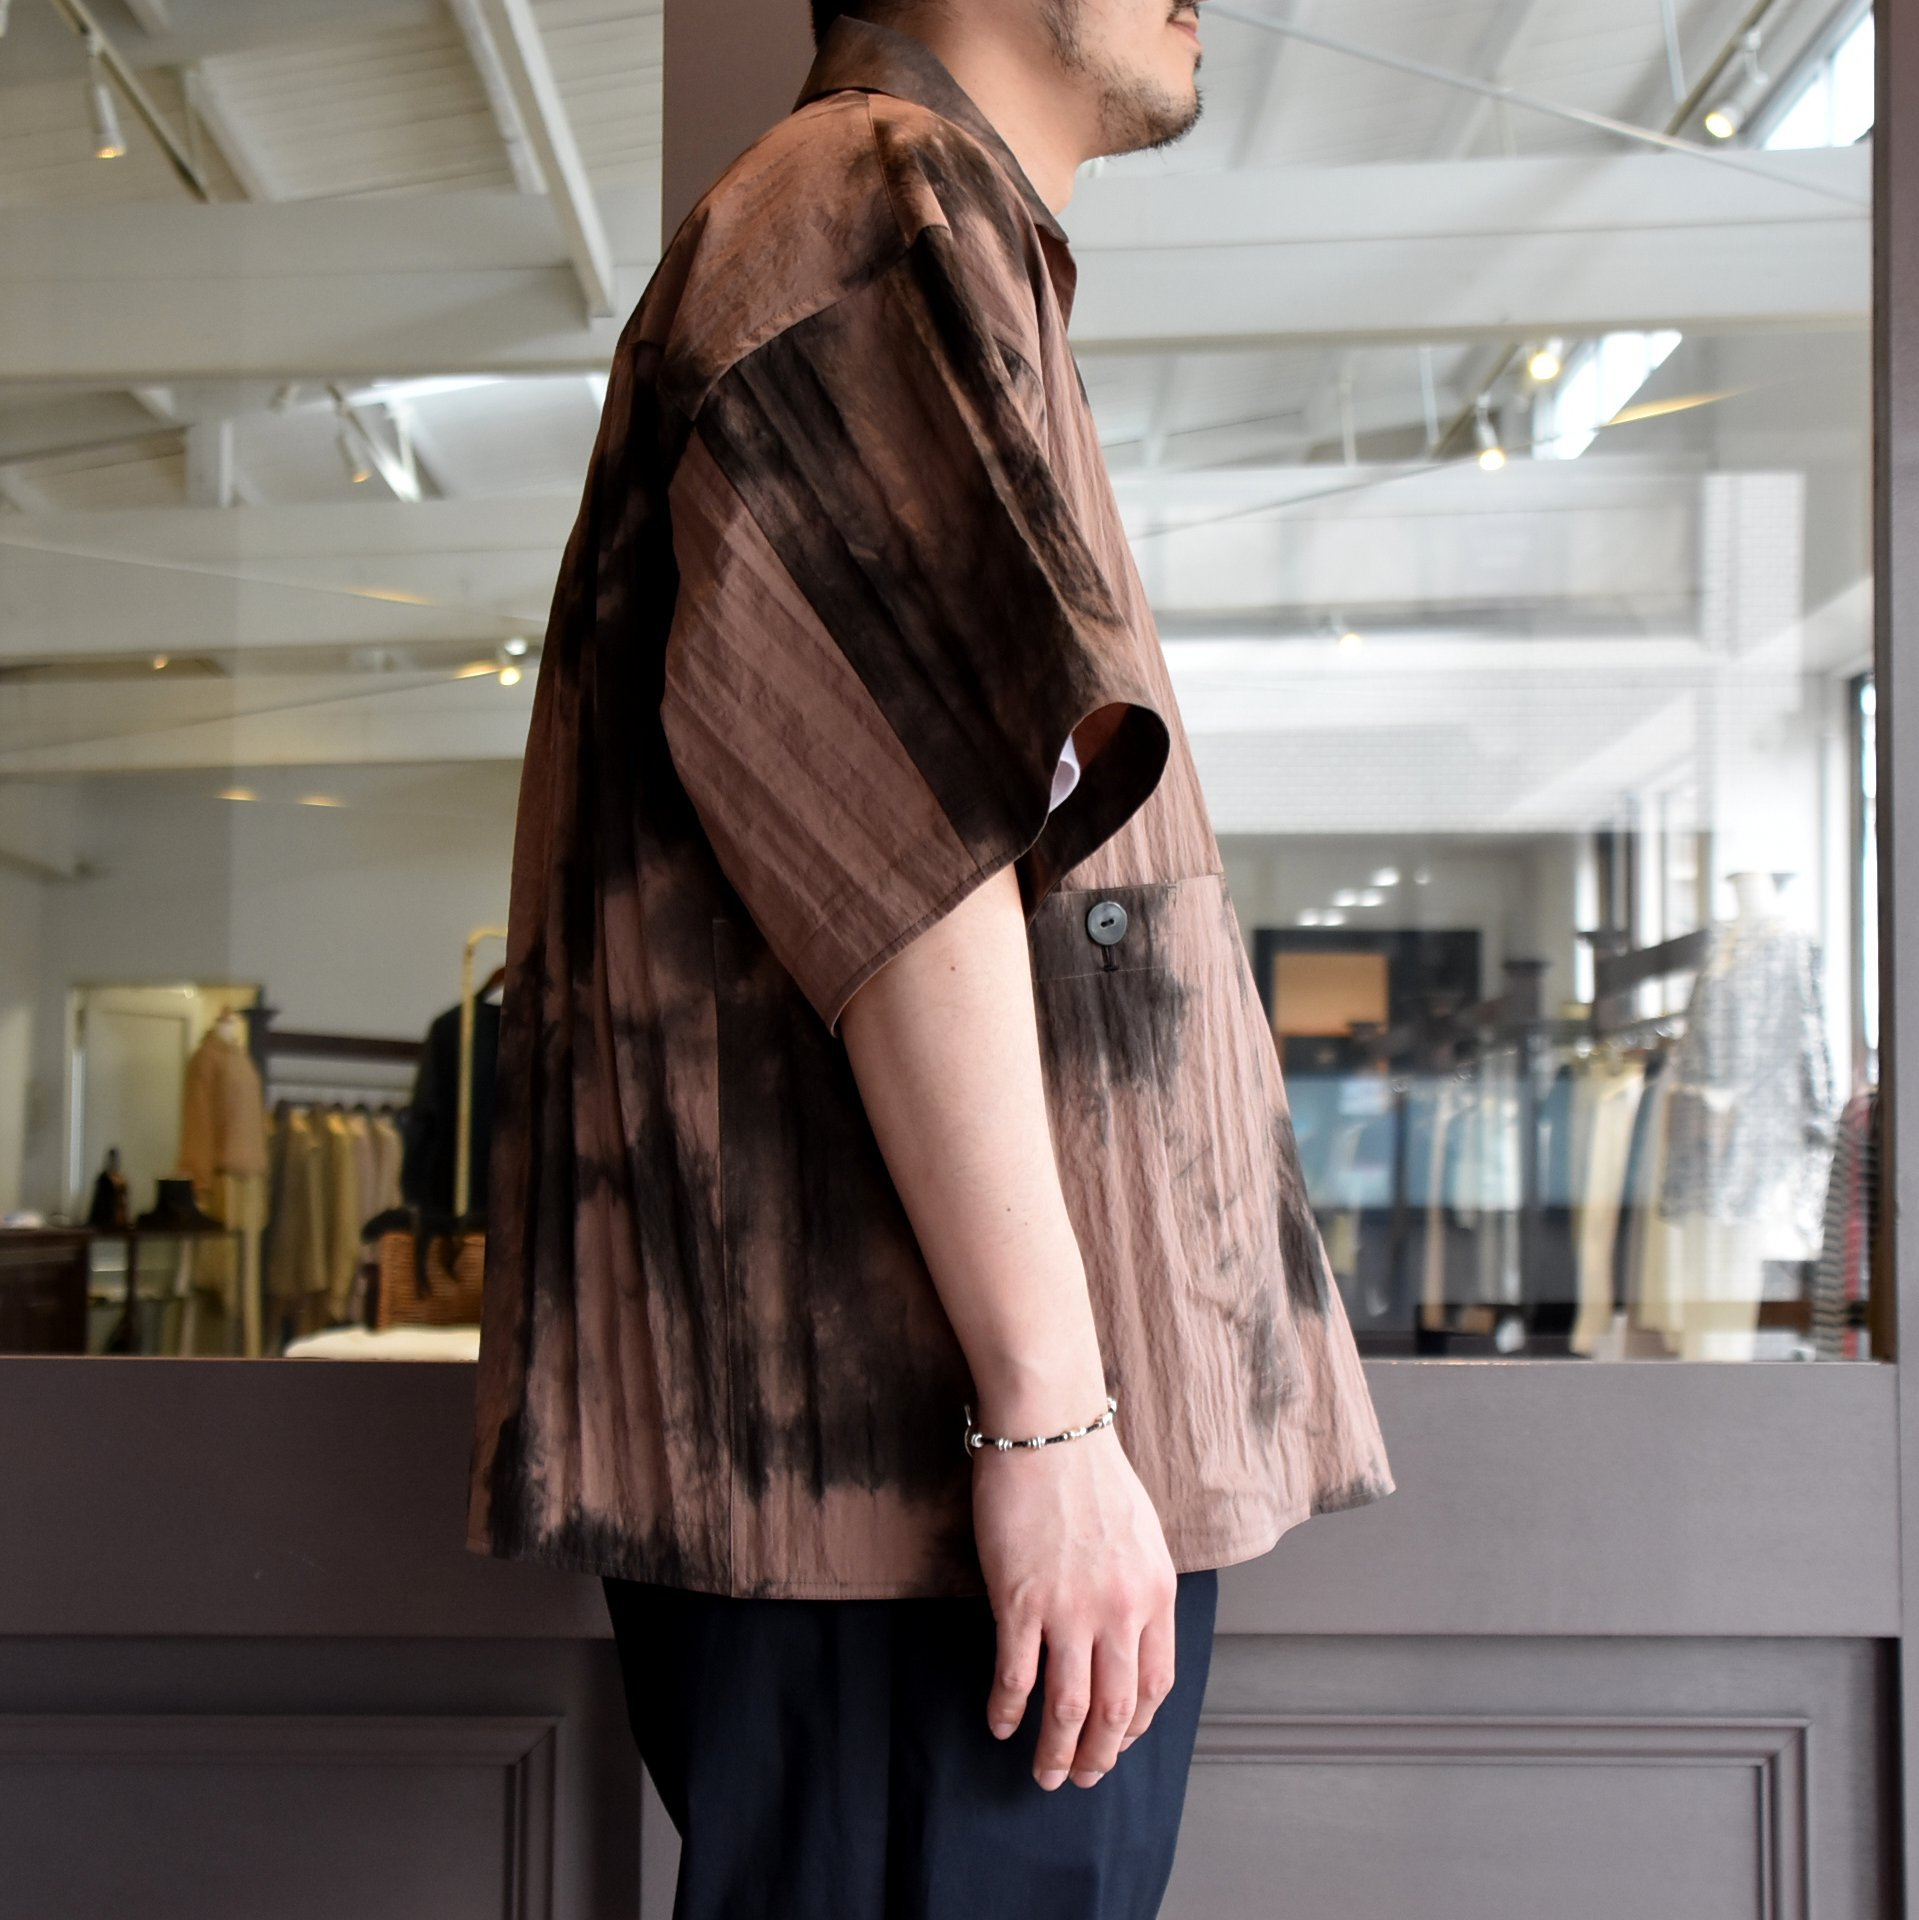 [2021]amachi.(アマチ) Packable Meeting Shirt -Brown Uneven Dye- #AY8-14(4)